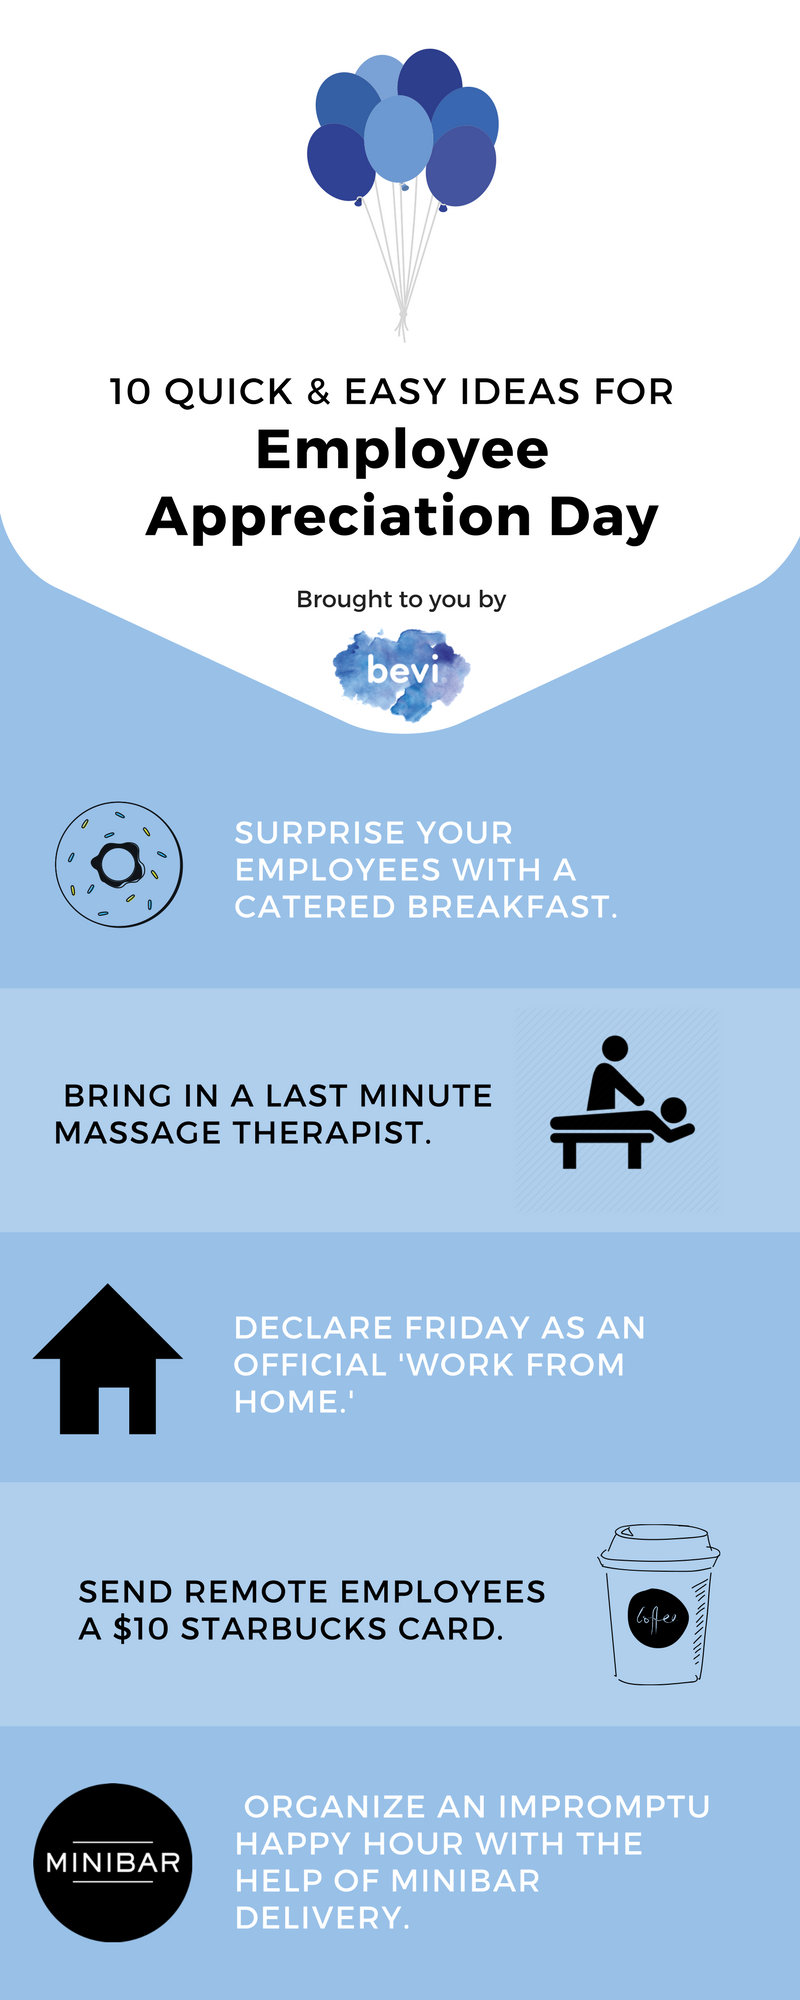 10 quick & easy ideas for employee appreciation day